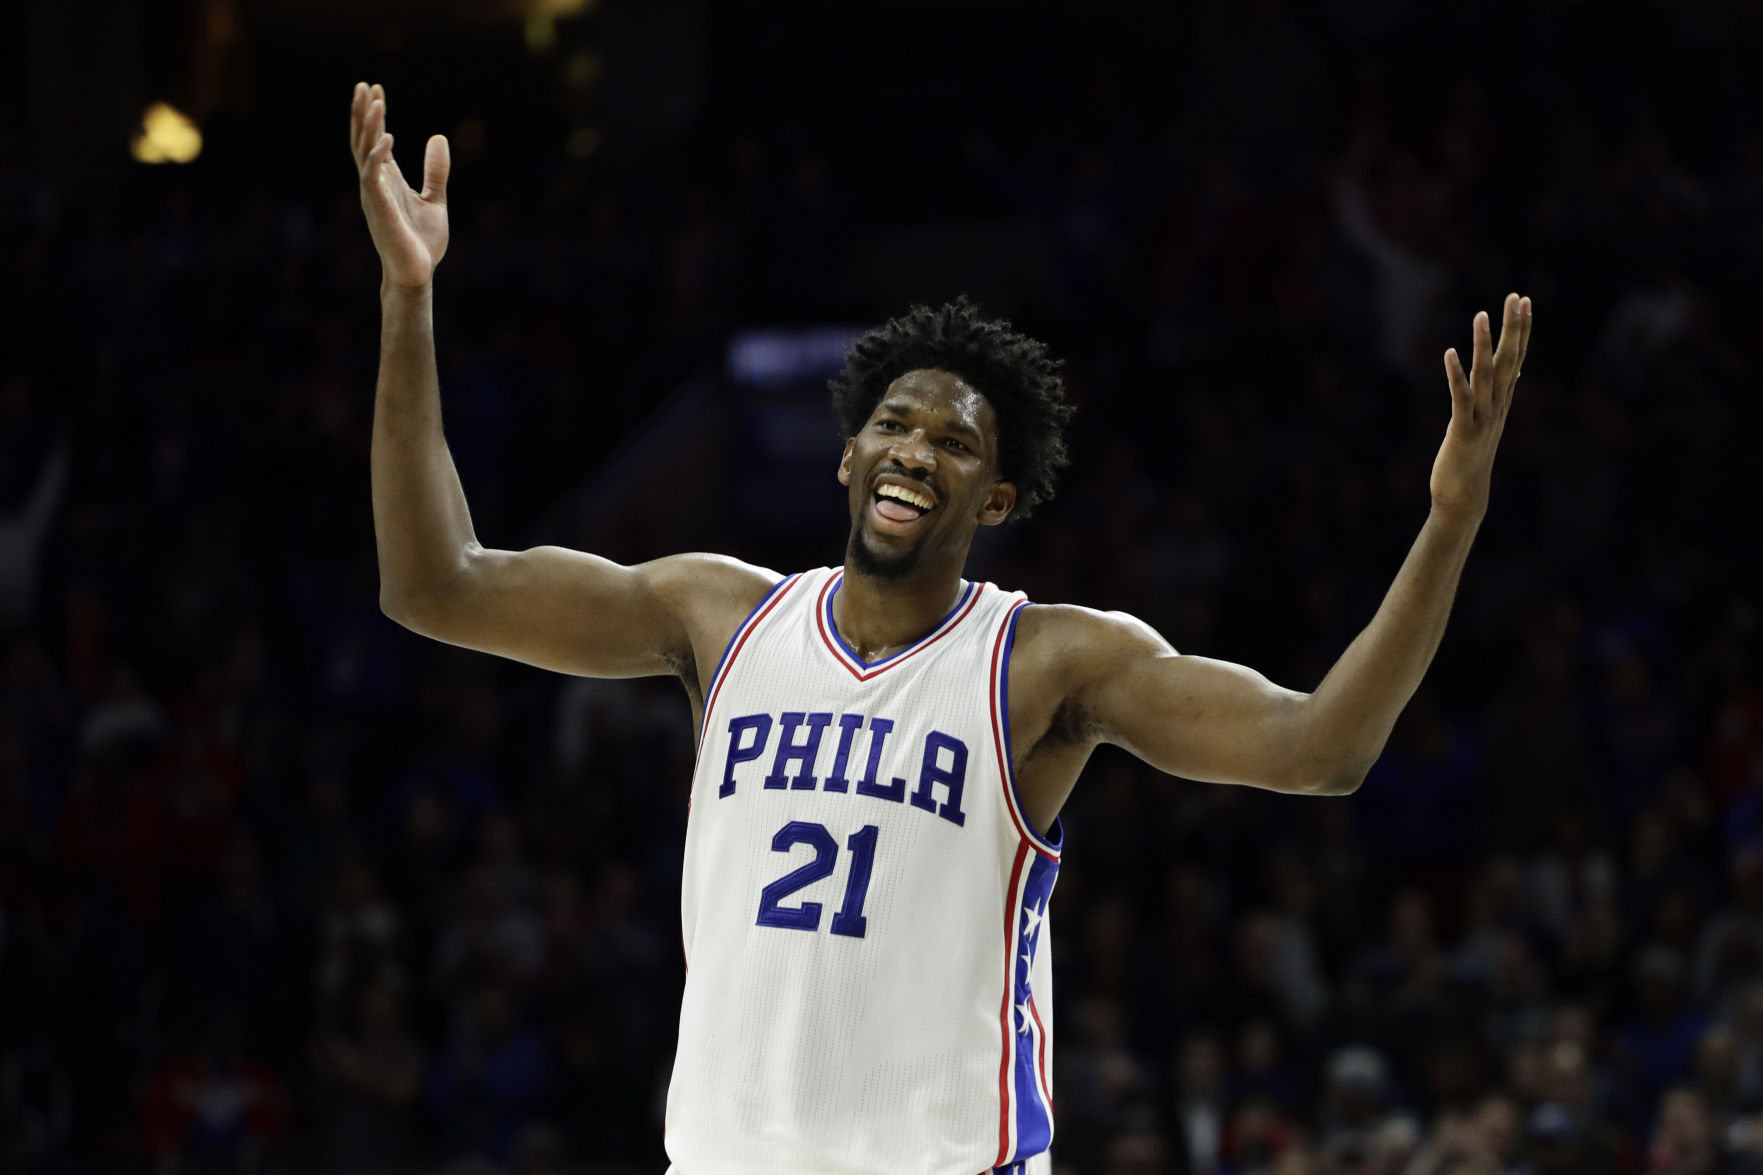 Brew: Joel Embiid is the NBA's G.O.A.T